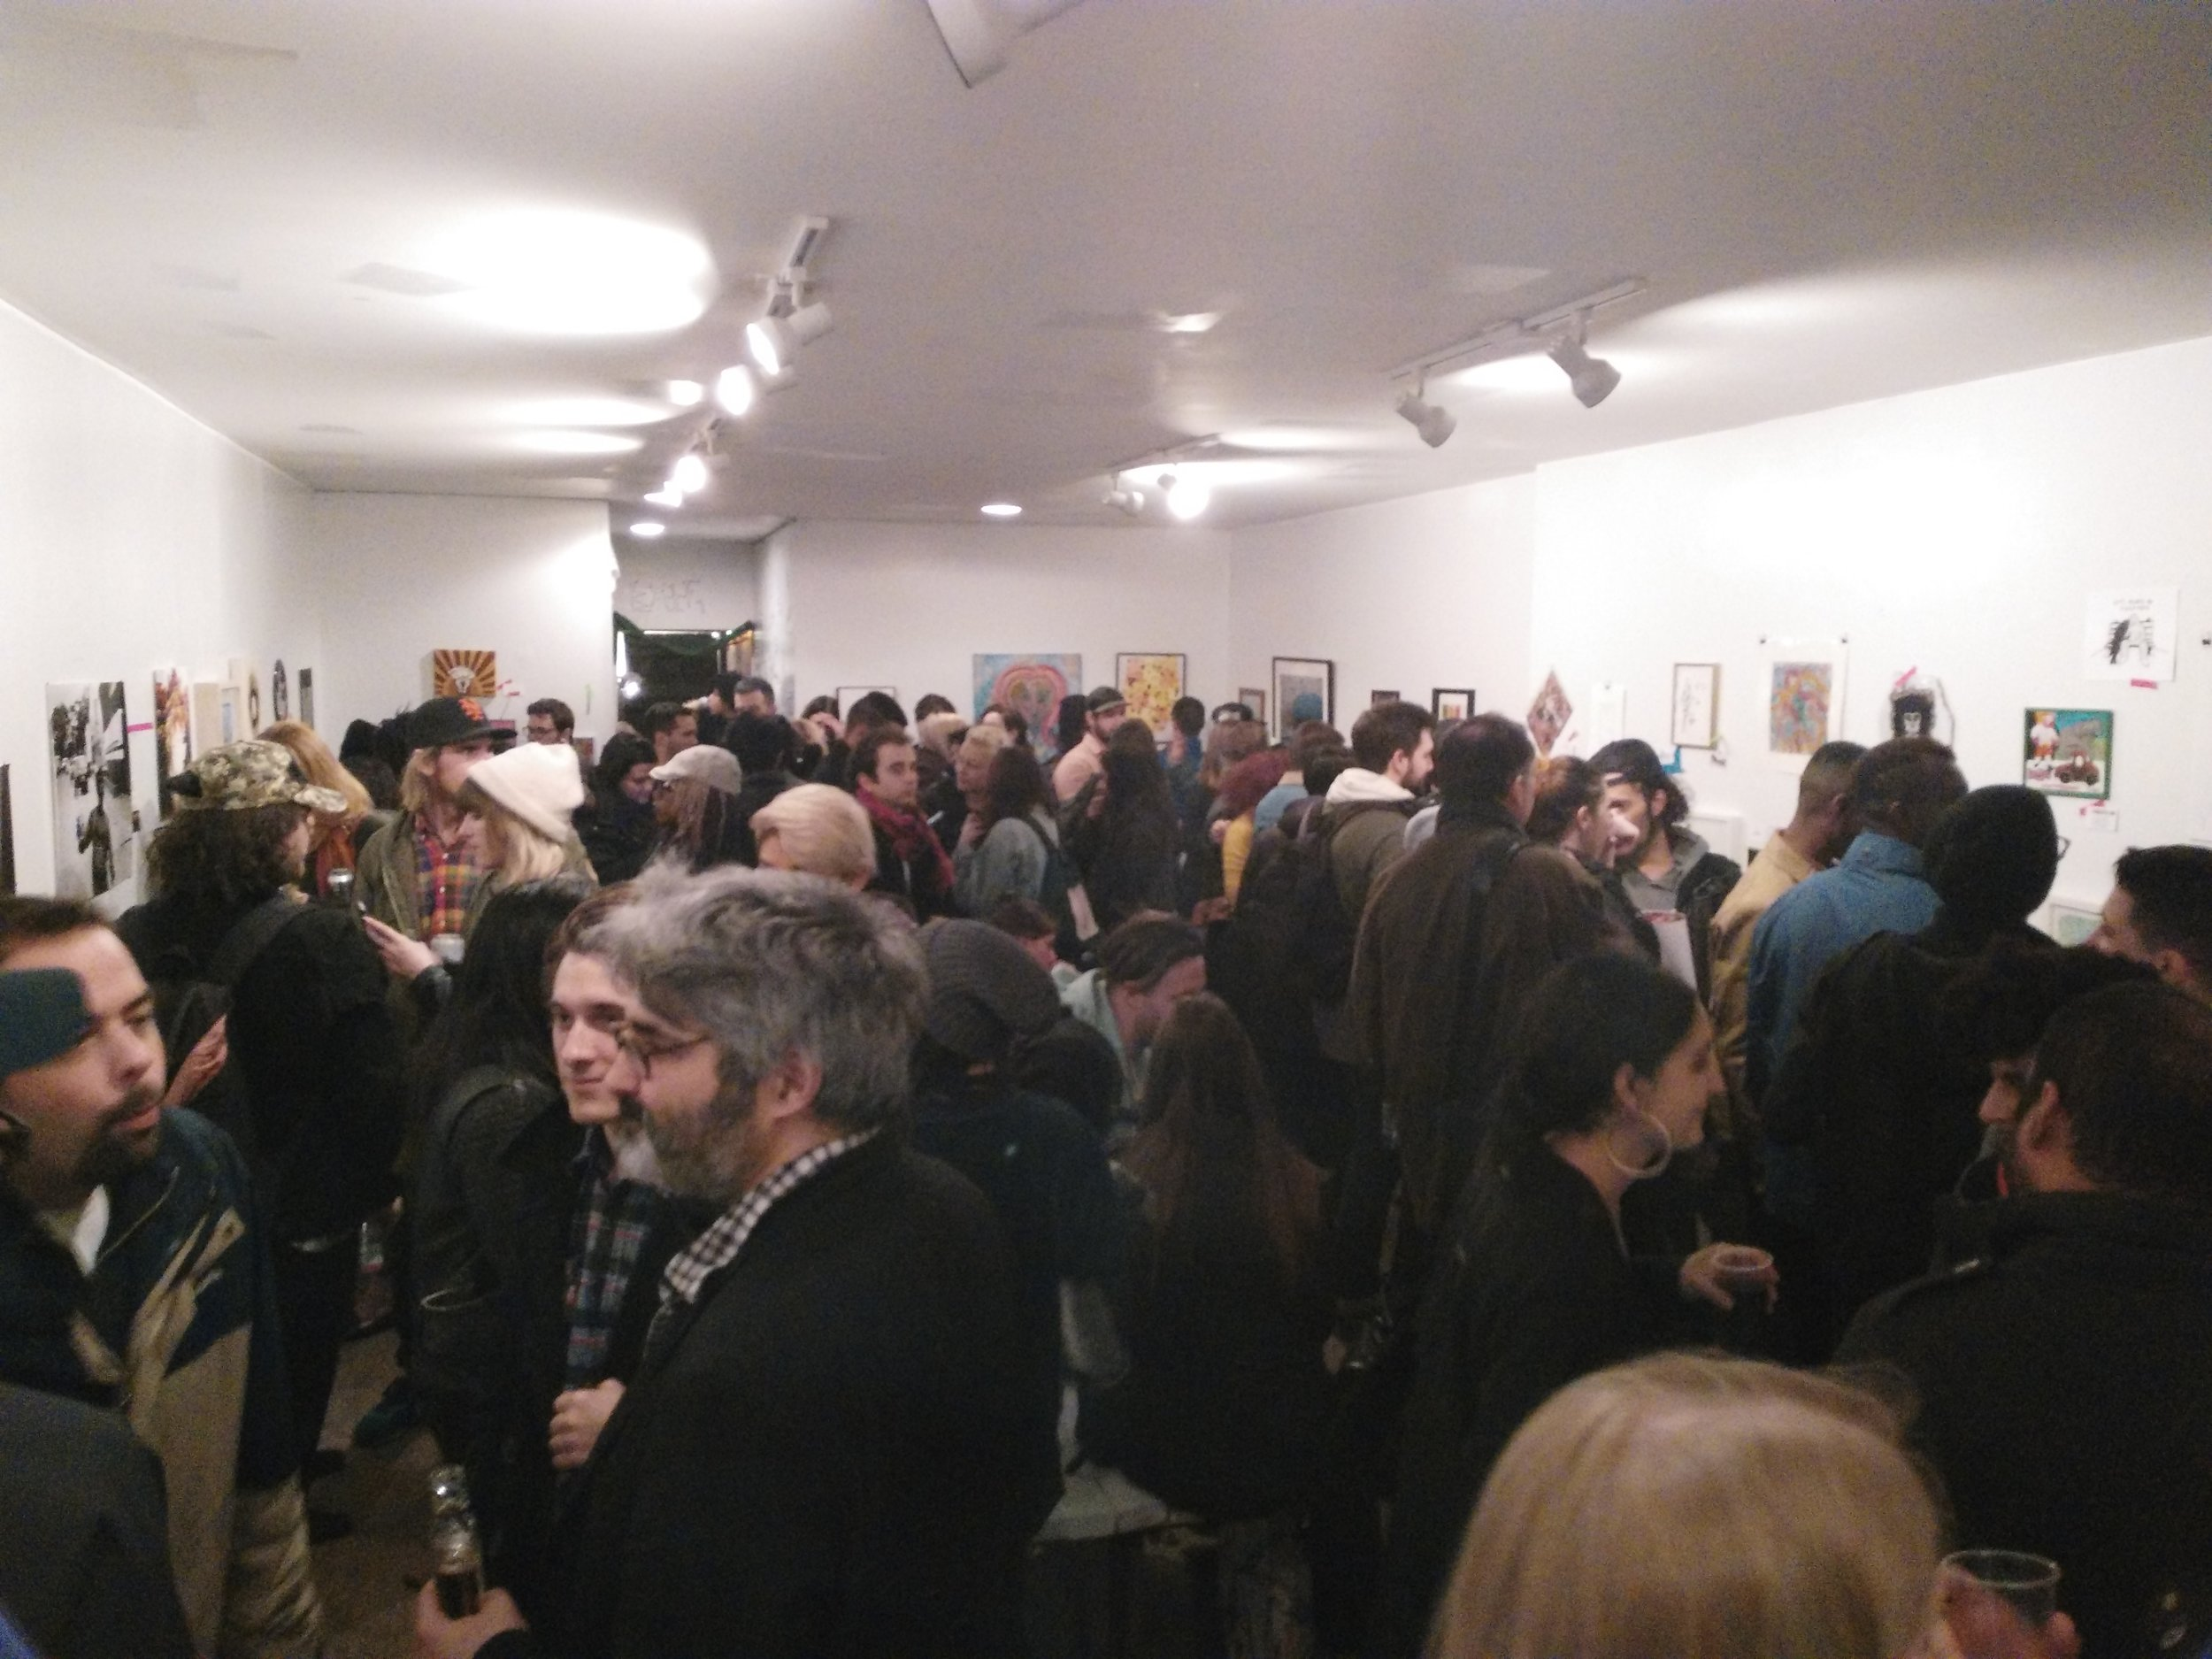 """The Living Gallery was packed during its """"Free the Art"""" exhibition. All photos by Davis Campbell."""